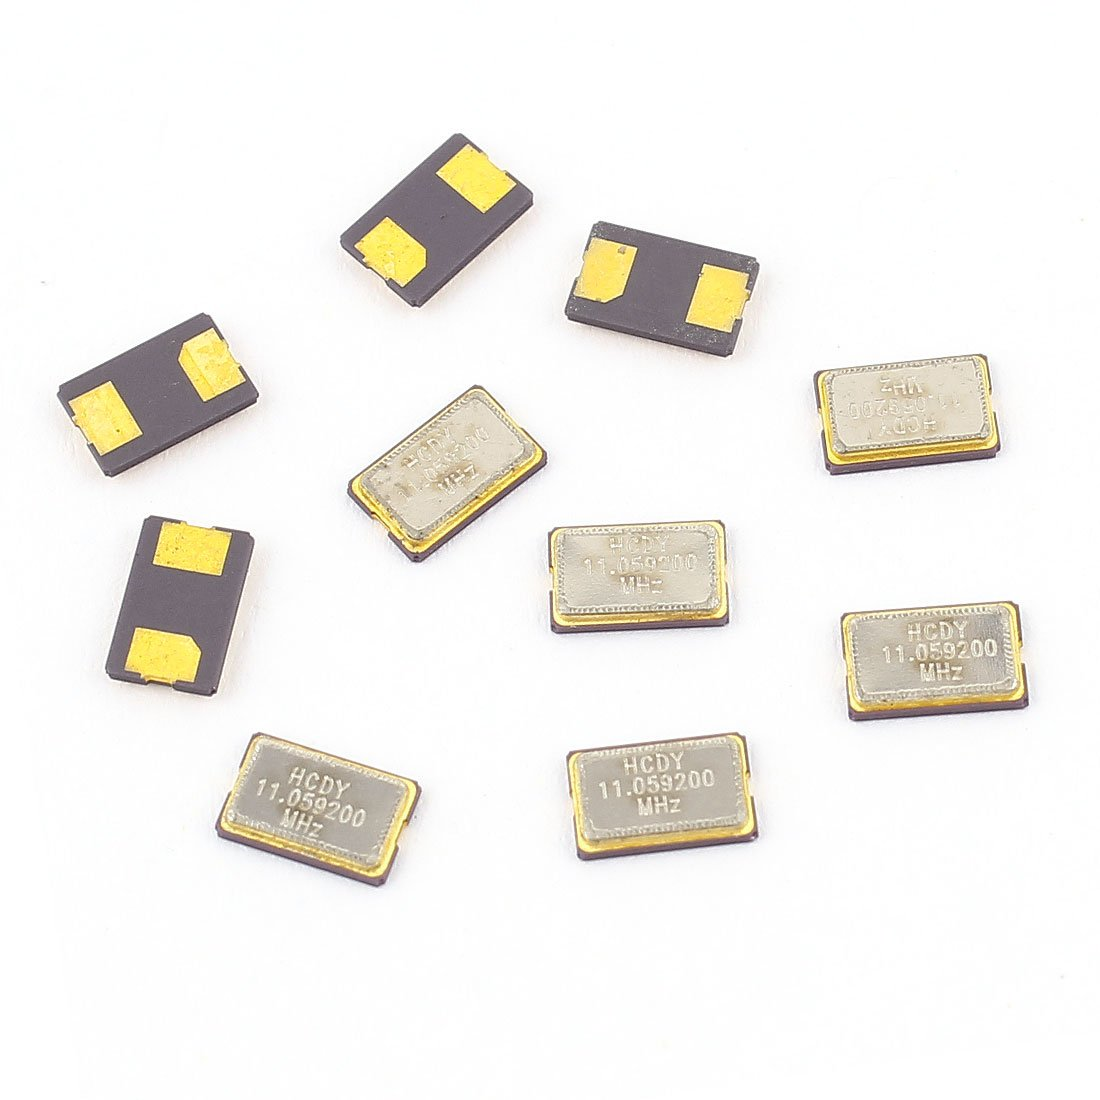 Aexit 10 Pcs Passive Components 11.0529MHz SMD Passive Crystal Oscillator 5mm Crystals x 3.2mm